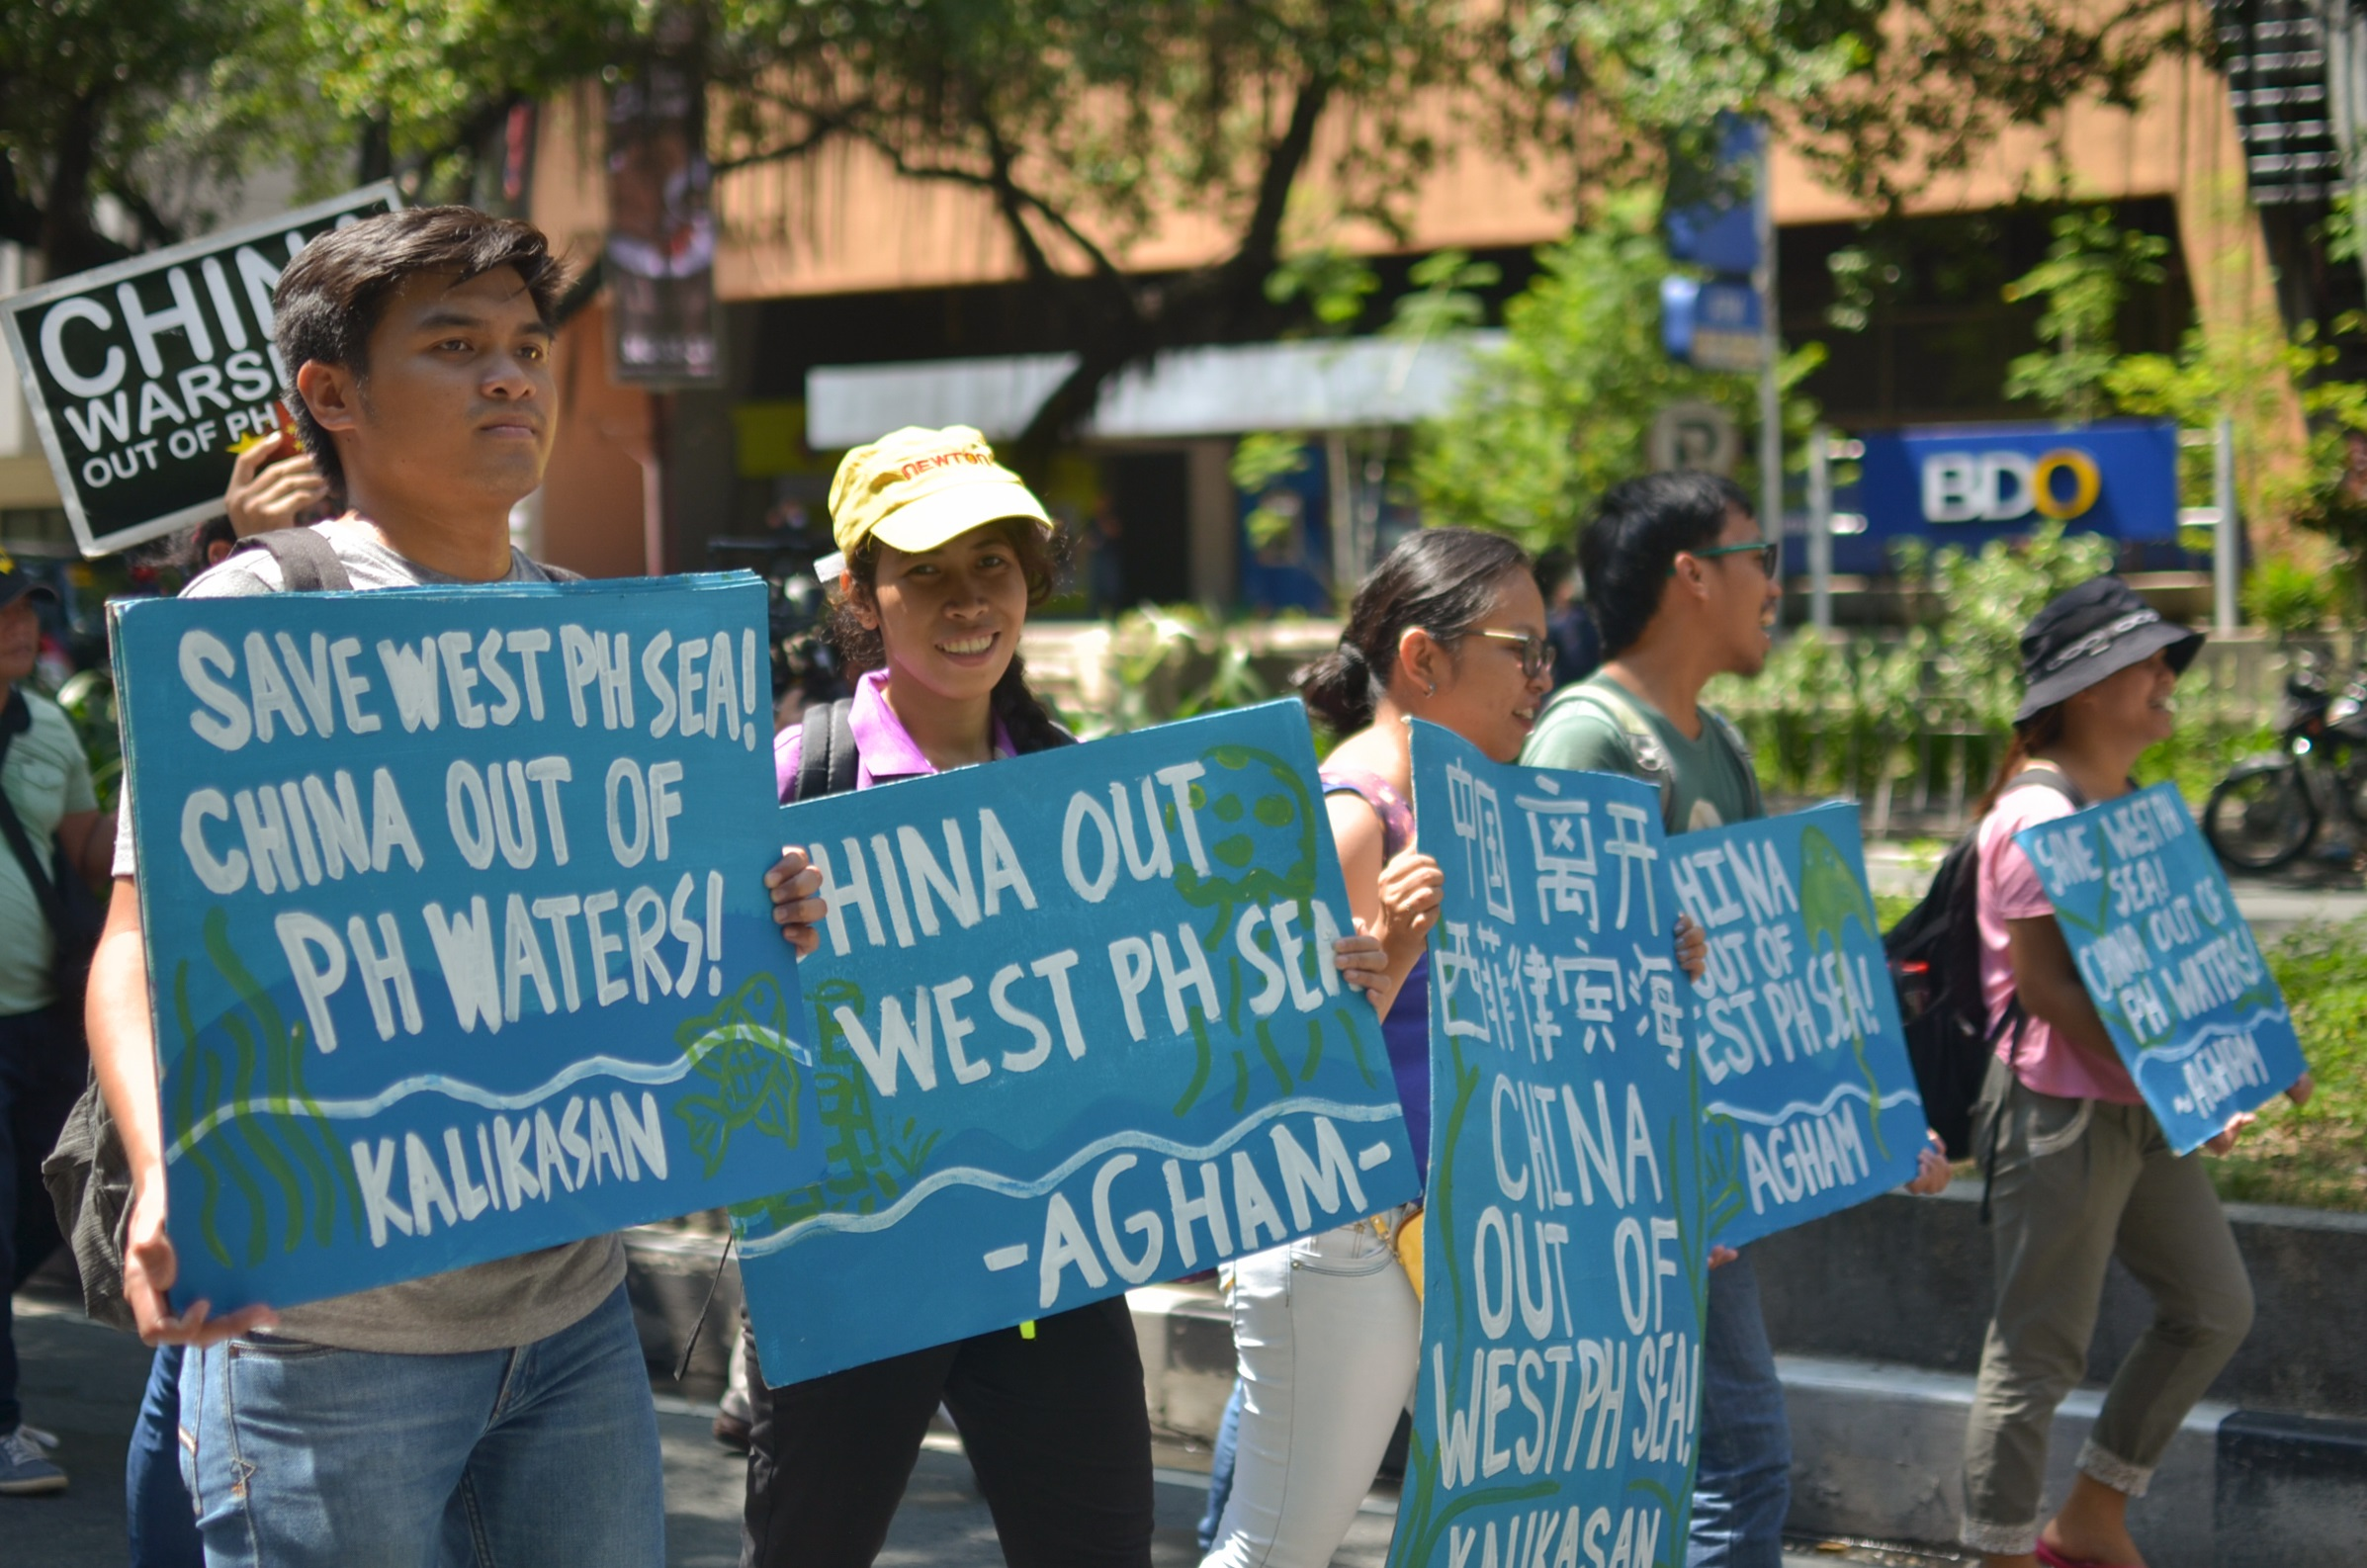 Environmentalist groups join Agham and Kalikasan PNE join the protest at the Chinese Consulate July 12 (Photo by Carlo Manalansan/Bulatlat)